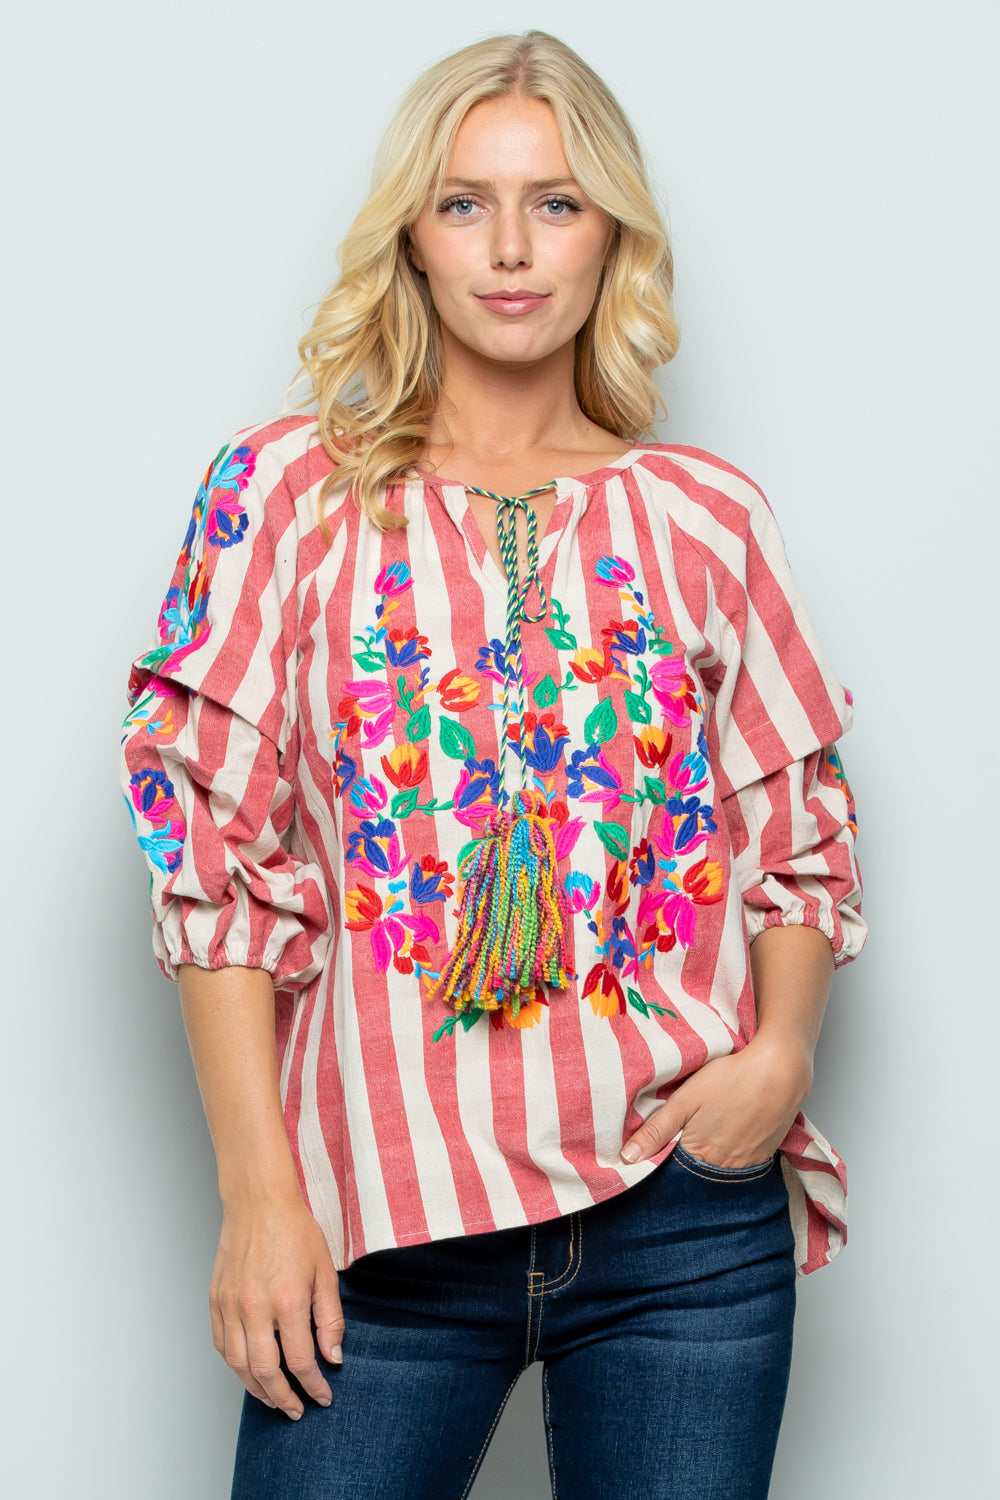 T2803 Floral Embroidery Stripe Top - LAVENDER